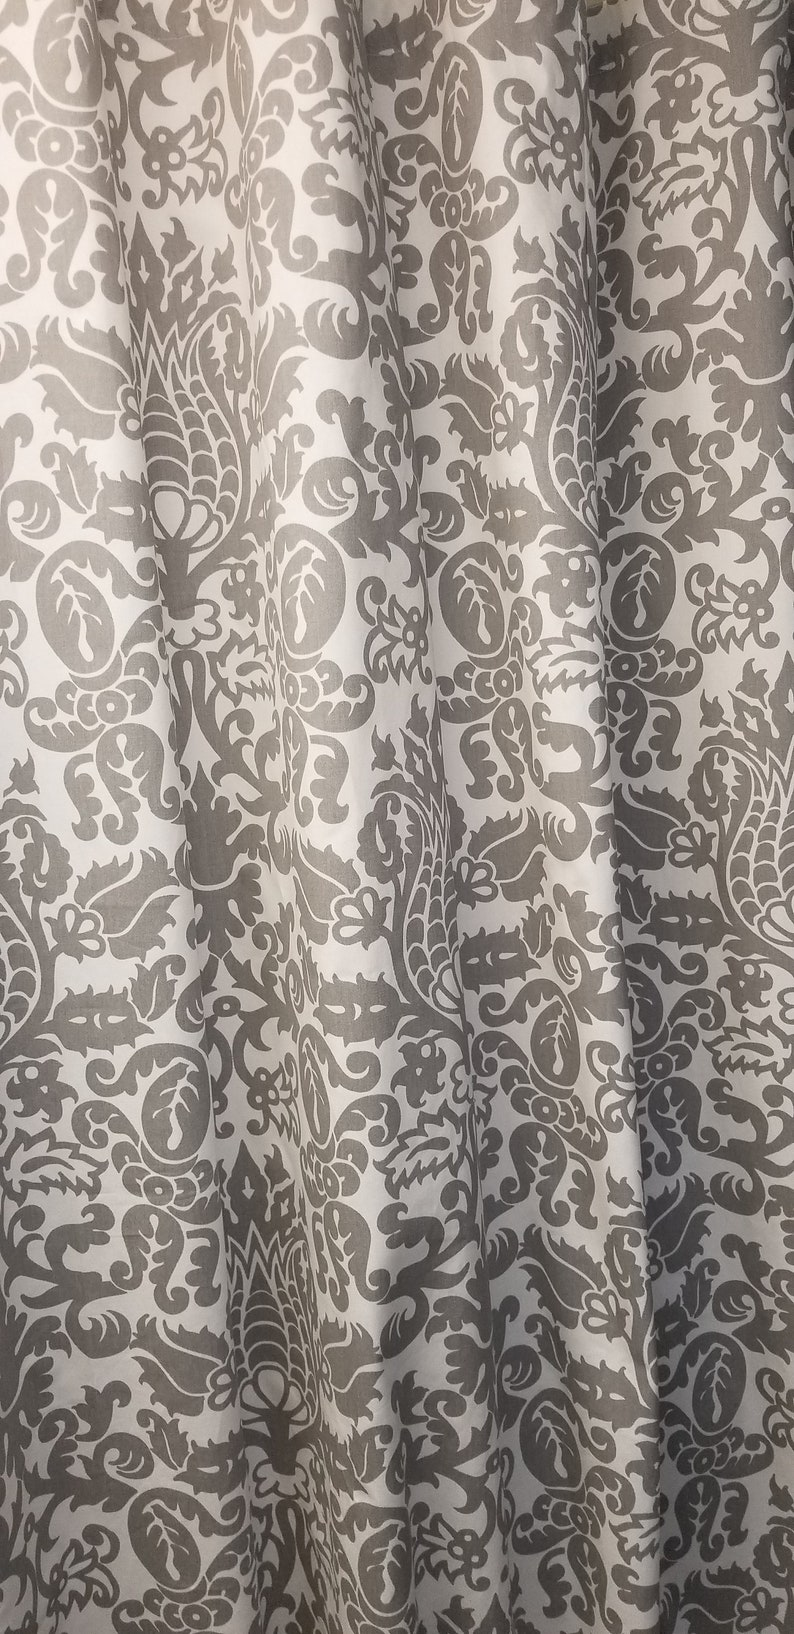 Grey And White Floral Shower Curtain Rts Designer Fabric Shower Curtain 72w X 72l Premier Amsterdam Grey White Cotton